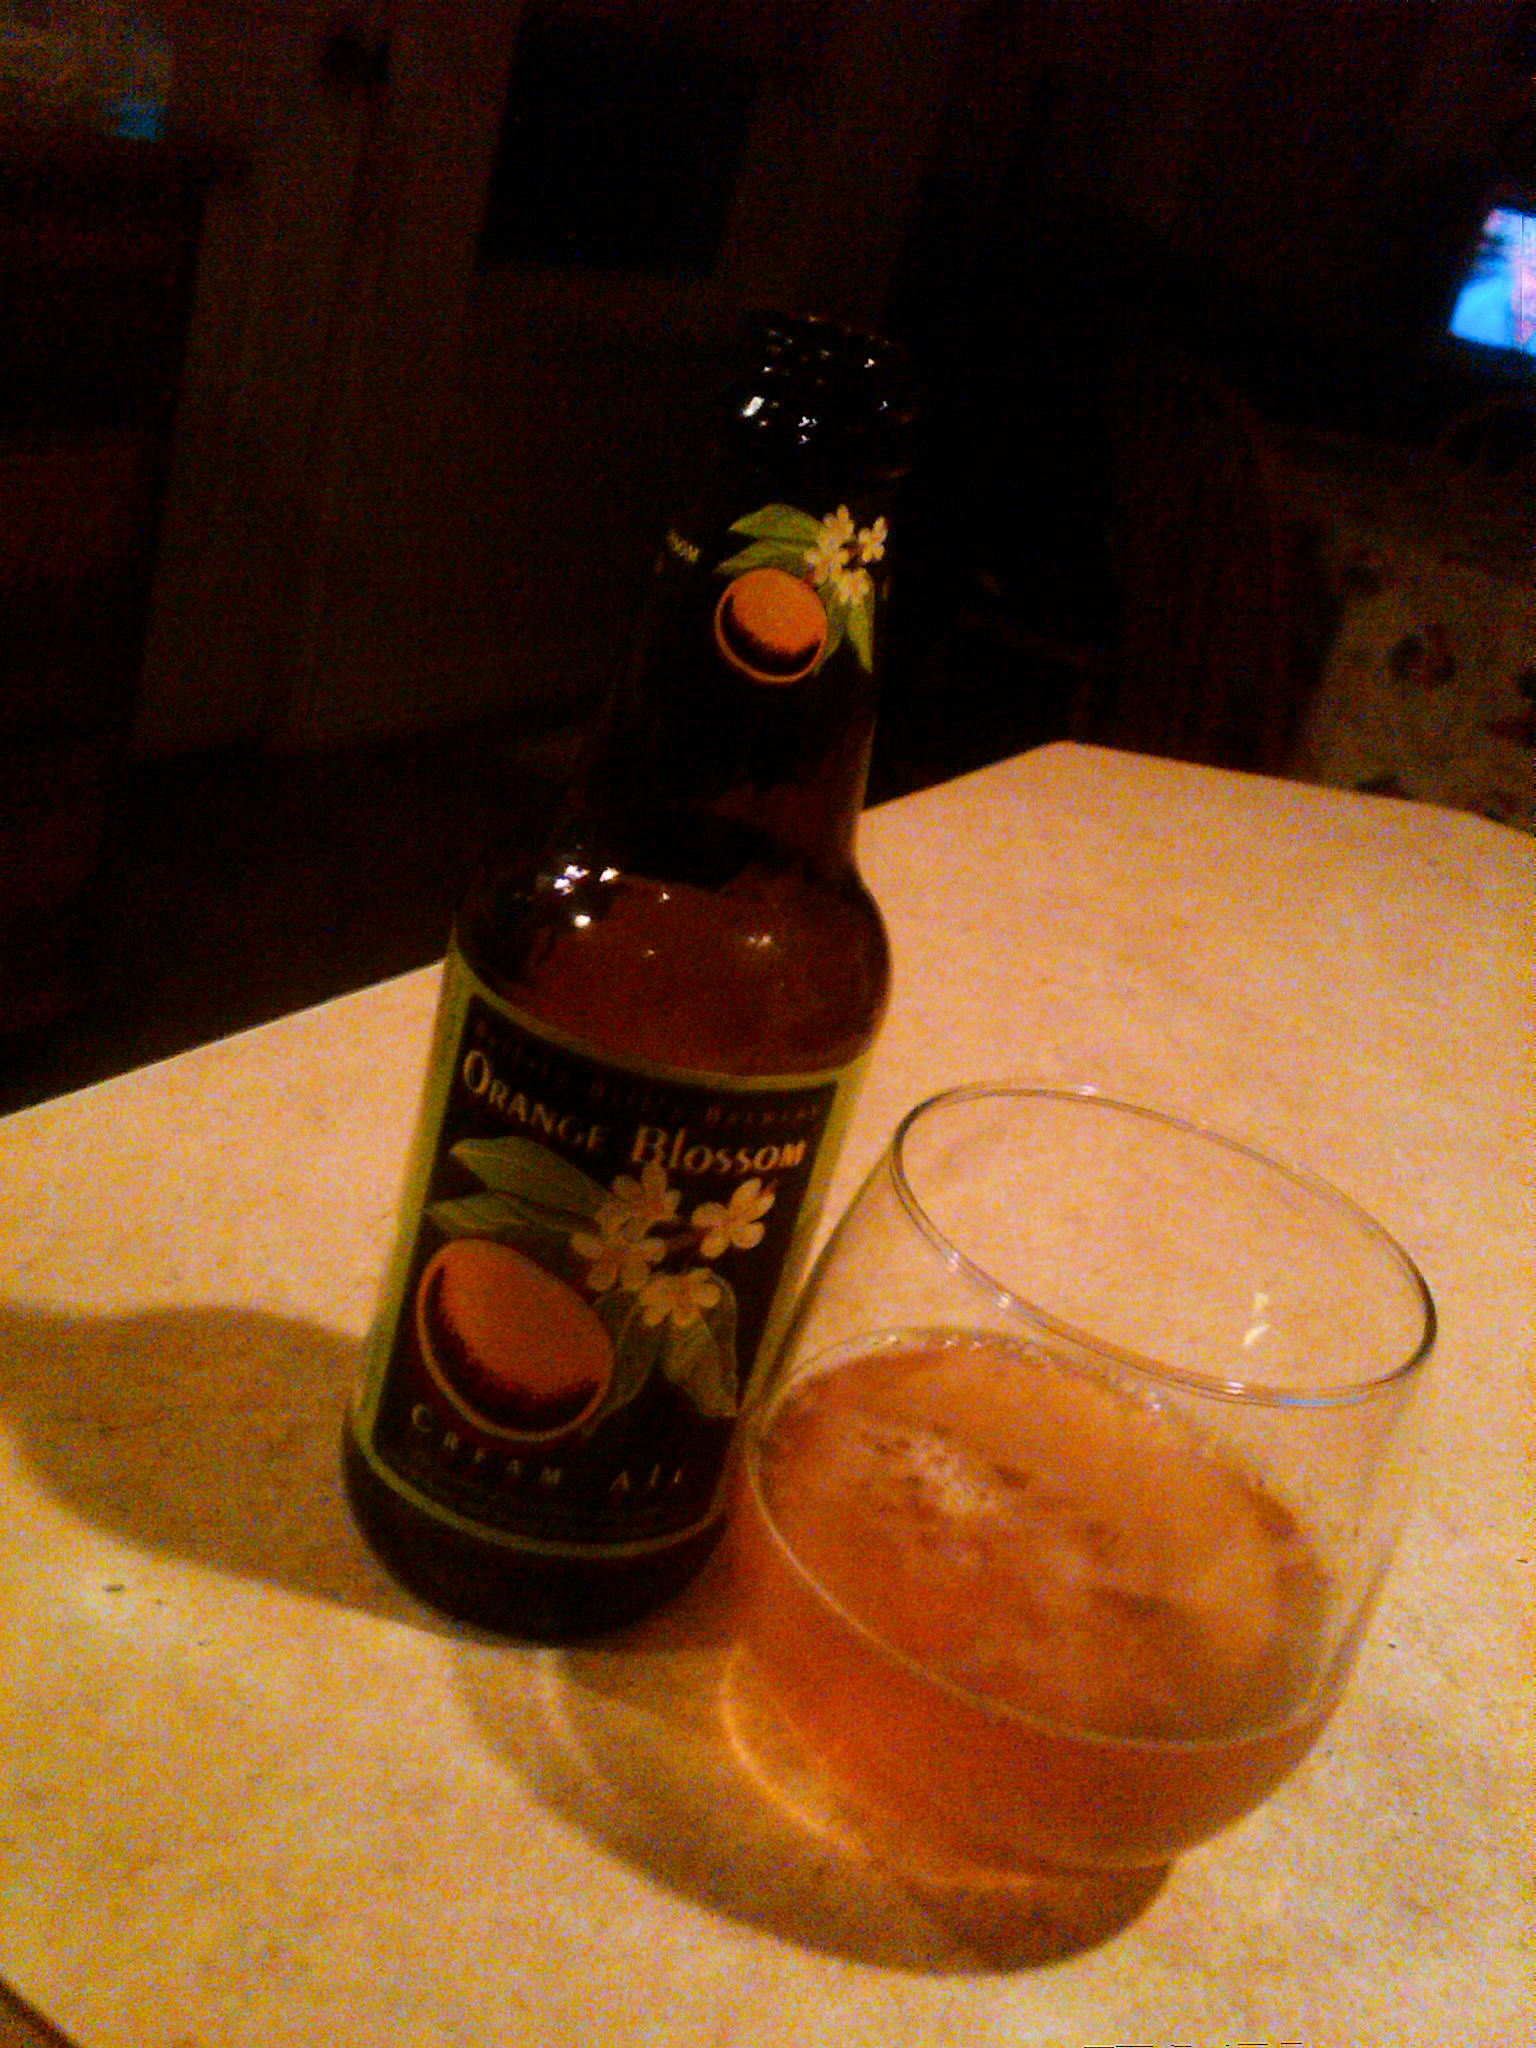 Orange Blossom Beer Buffalo Bills Buffalo Bills Orange Blossom